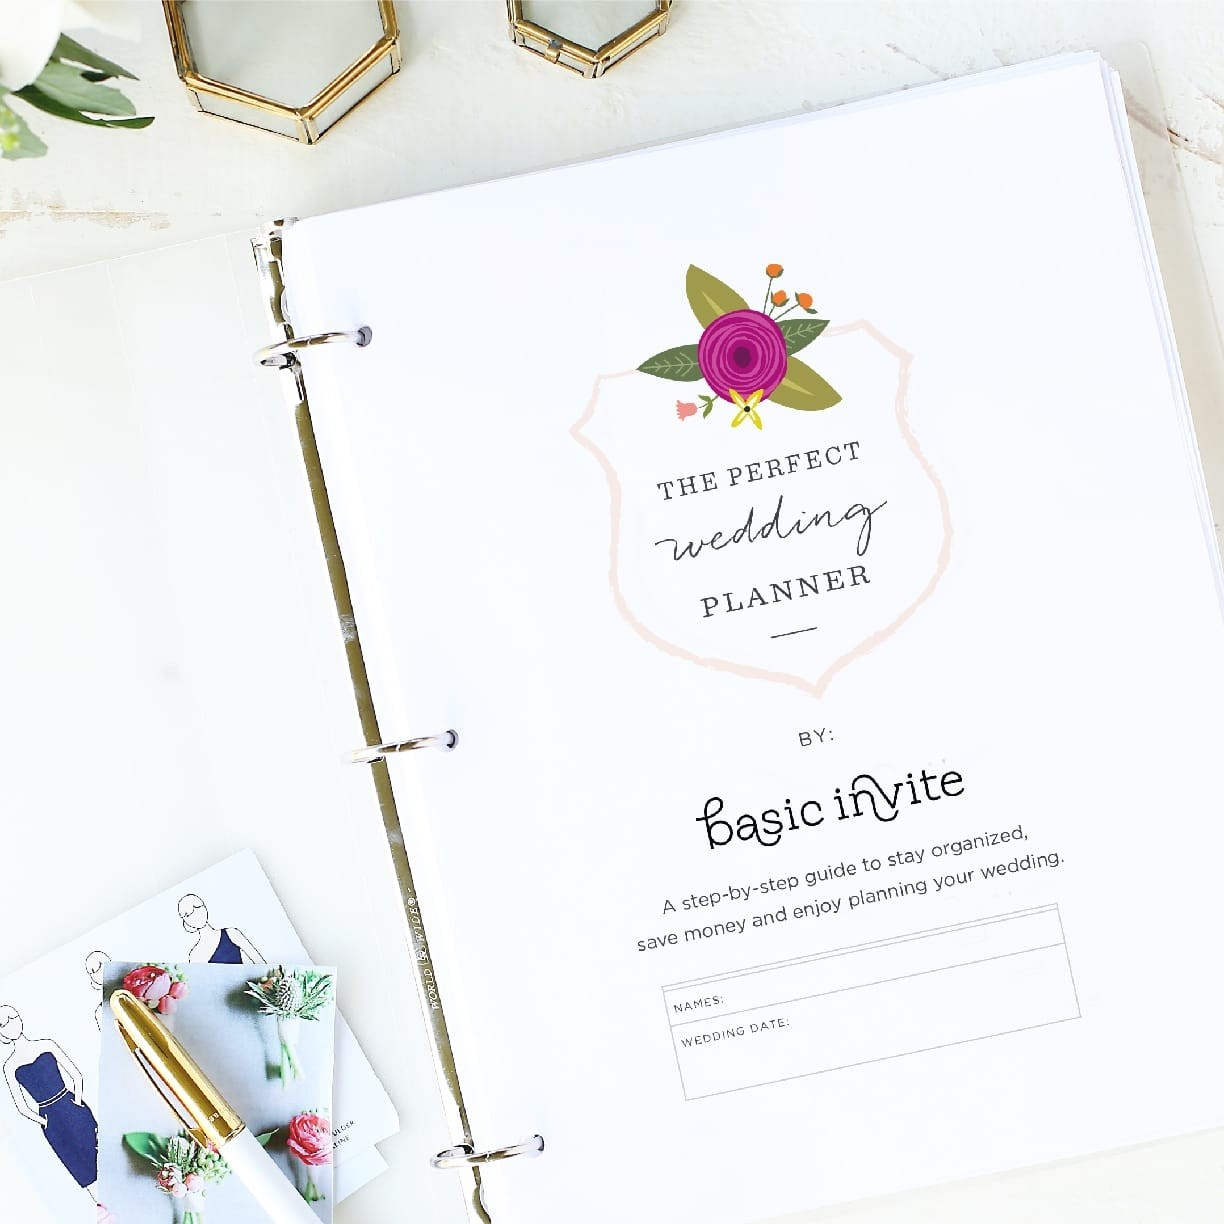 Wedding planner printable by basic invite free wedding planner printable junglespirit